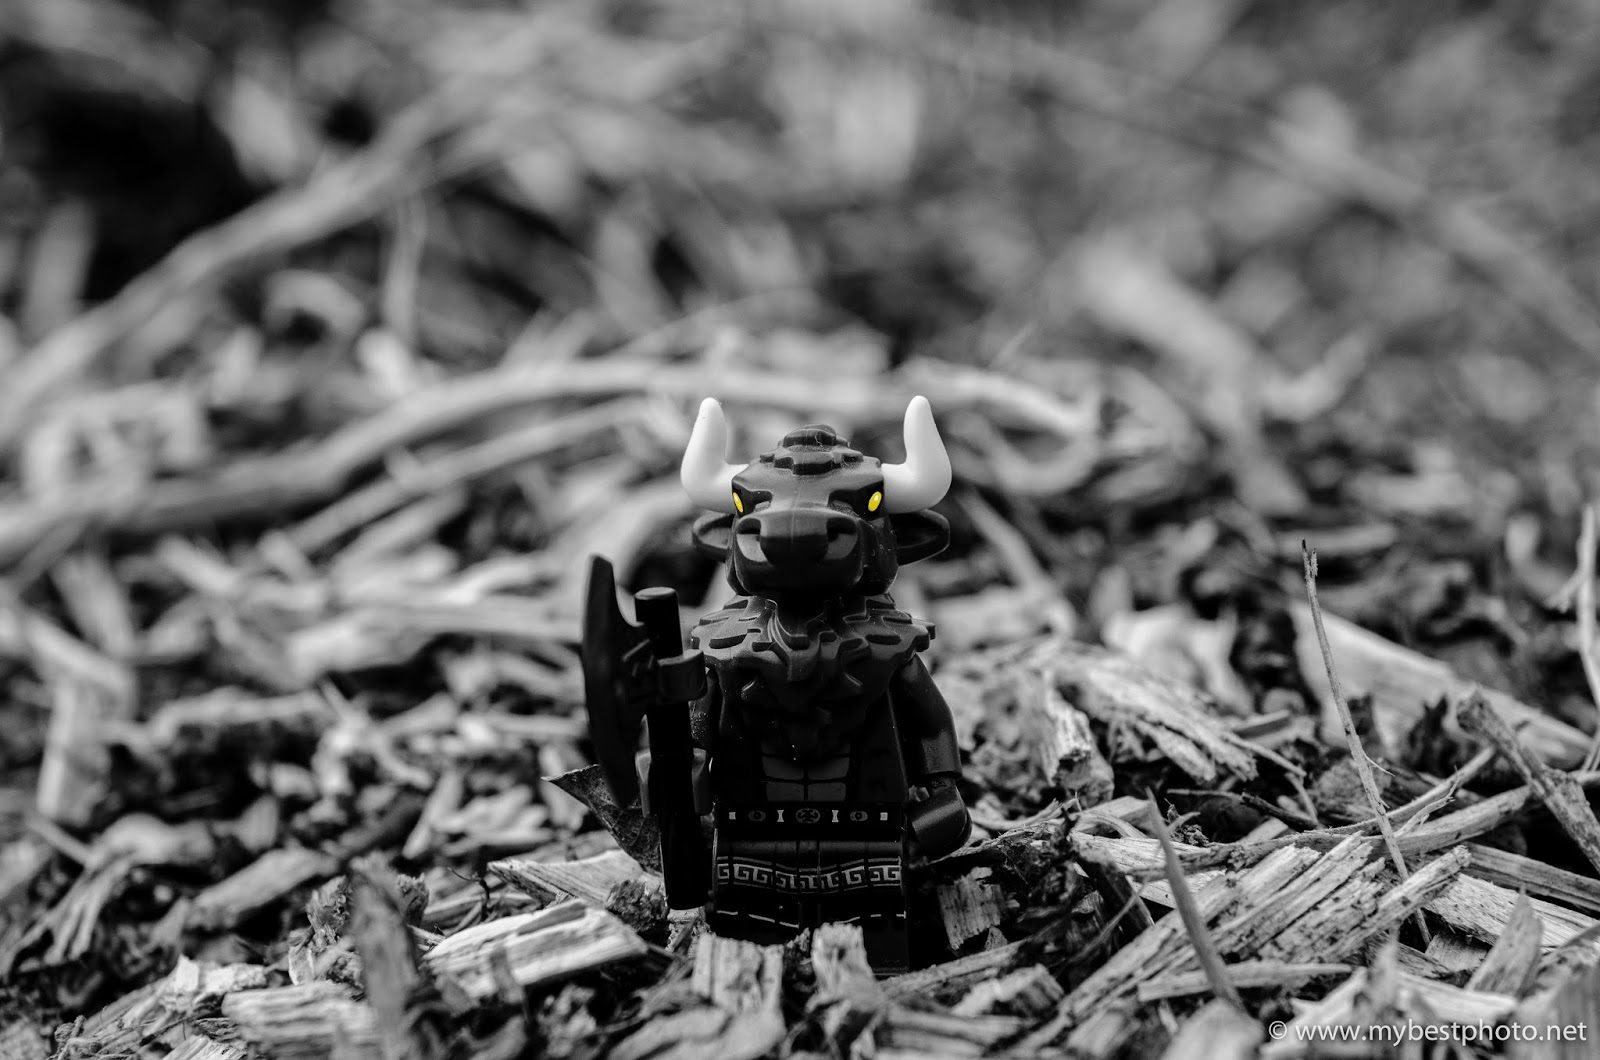 Lego Minifigure Series 6 Minotaur - Wallpaper